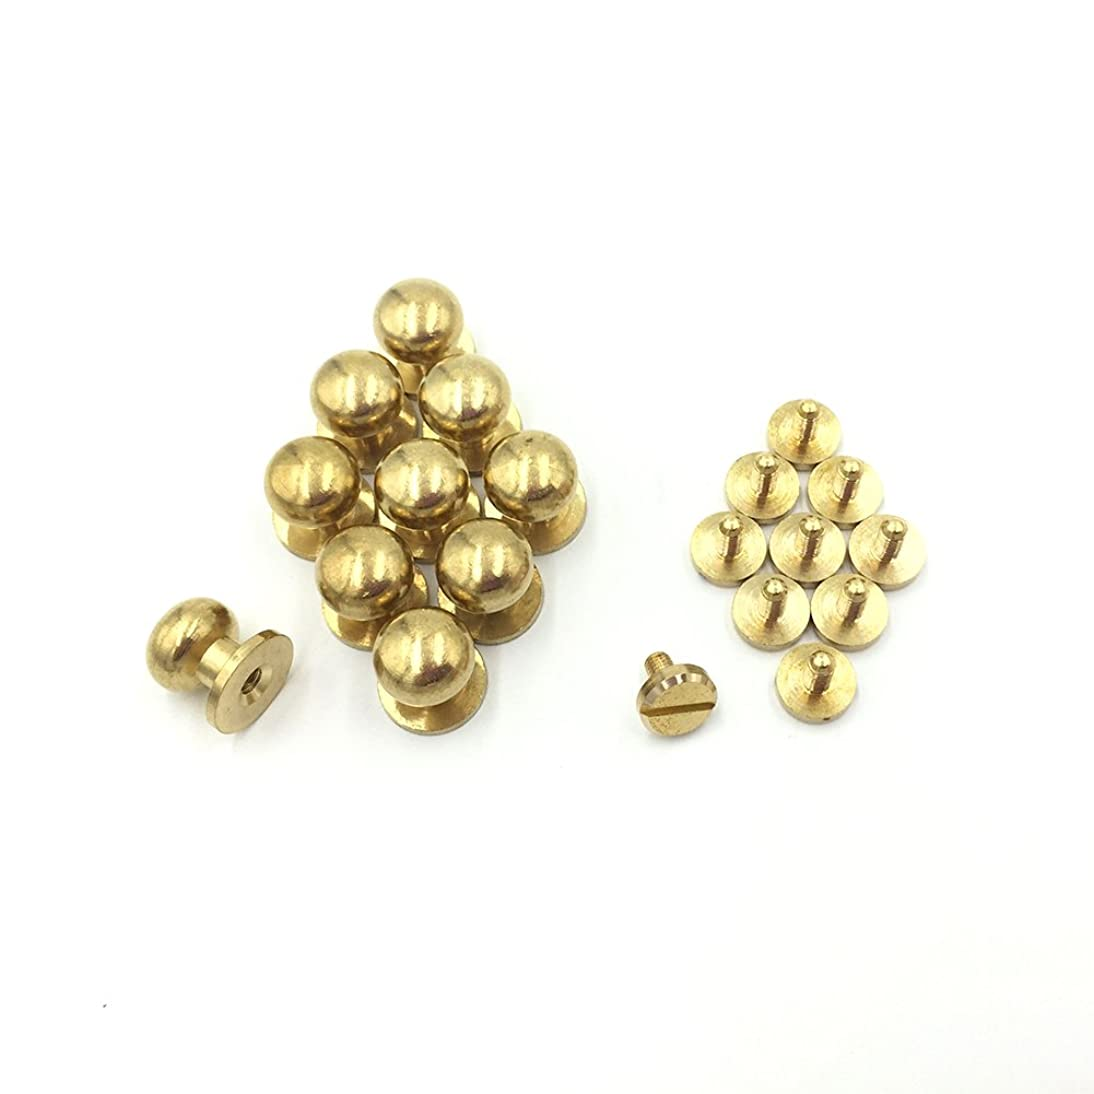 10- PACK 10mm Sam Browne Solid Brass Round Button Studs,Leather Craft Belt CHICAGO SCREWS SOLID BRASS Studs Nail Rivets DIY for Belt Wallet Handbag (10MM)